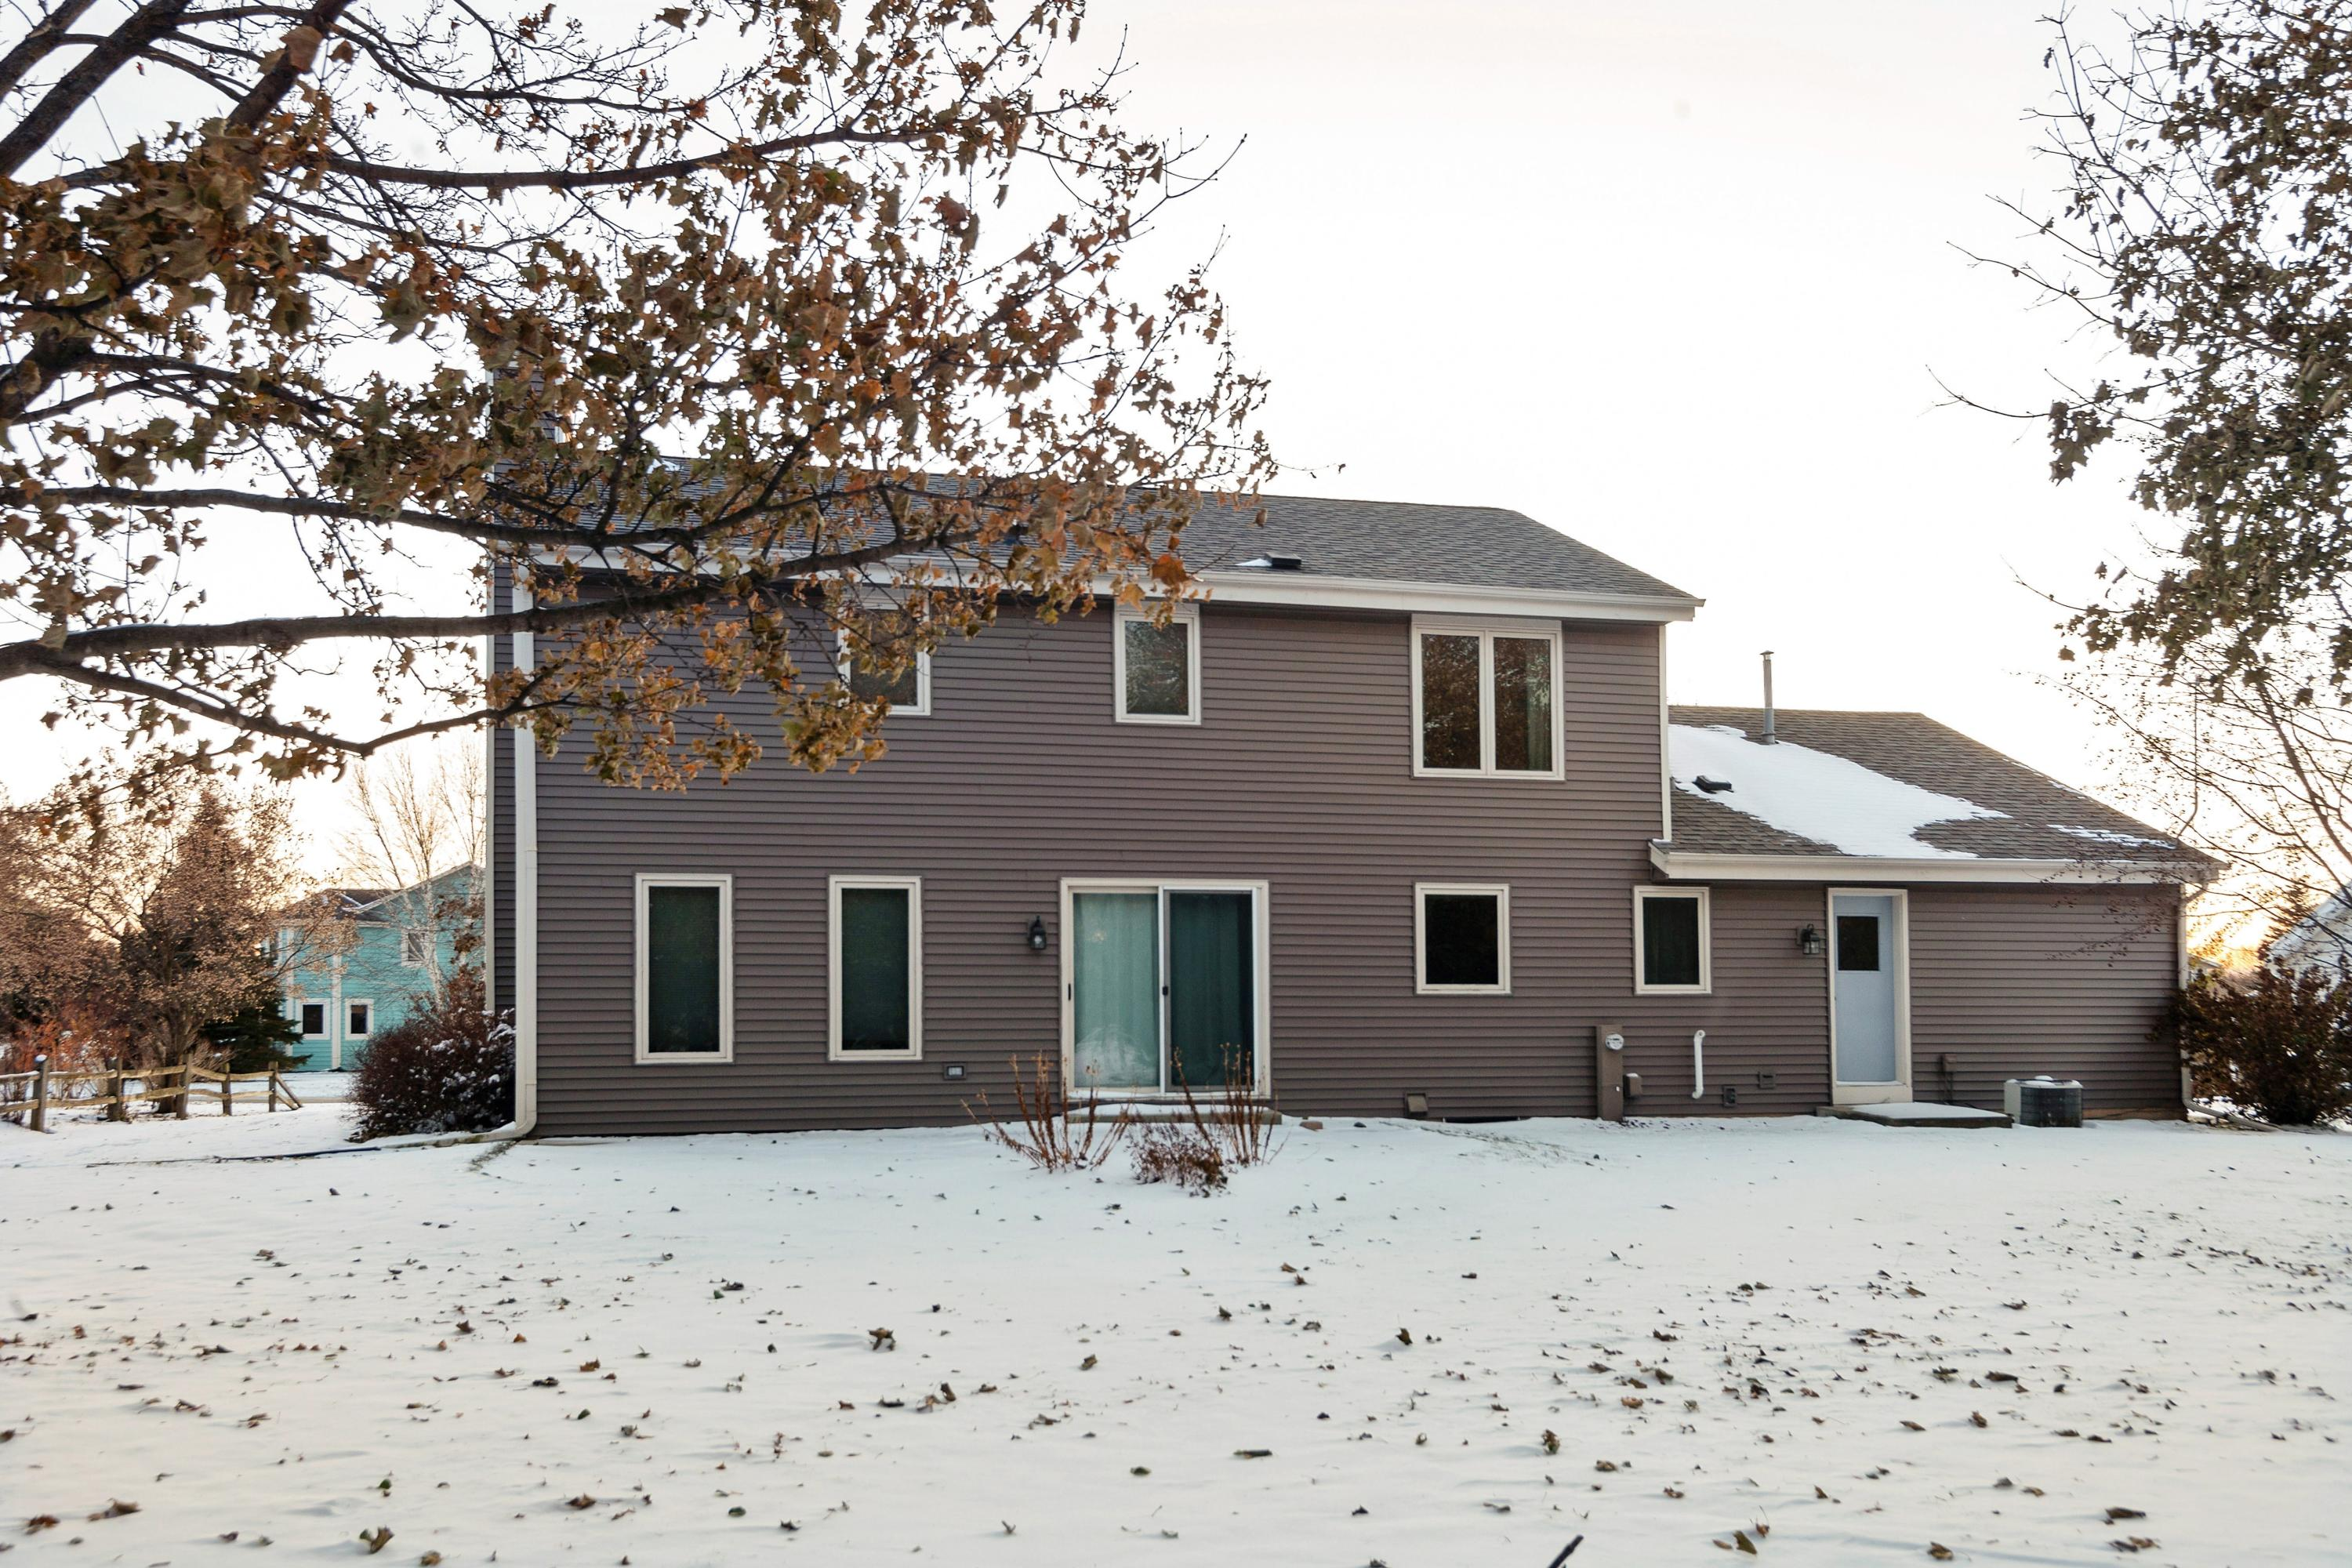 W173S8296 Clearbrook Dr, Muskego, Wisconsin 53150, 3 Bedrooms Bedrooms, 6 Rooms Rooms,2 BathroomsBathrooms,Single-Family,For Sale,Clearbrook Dr,1667763